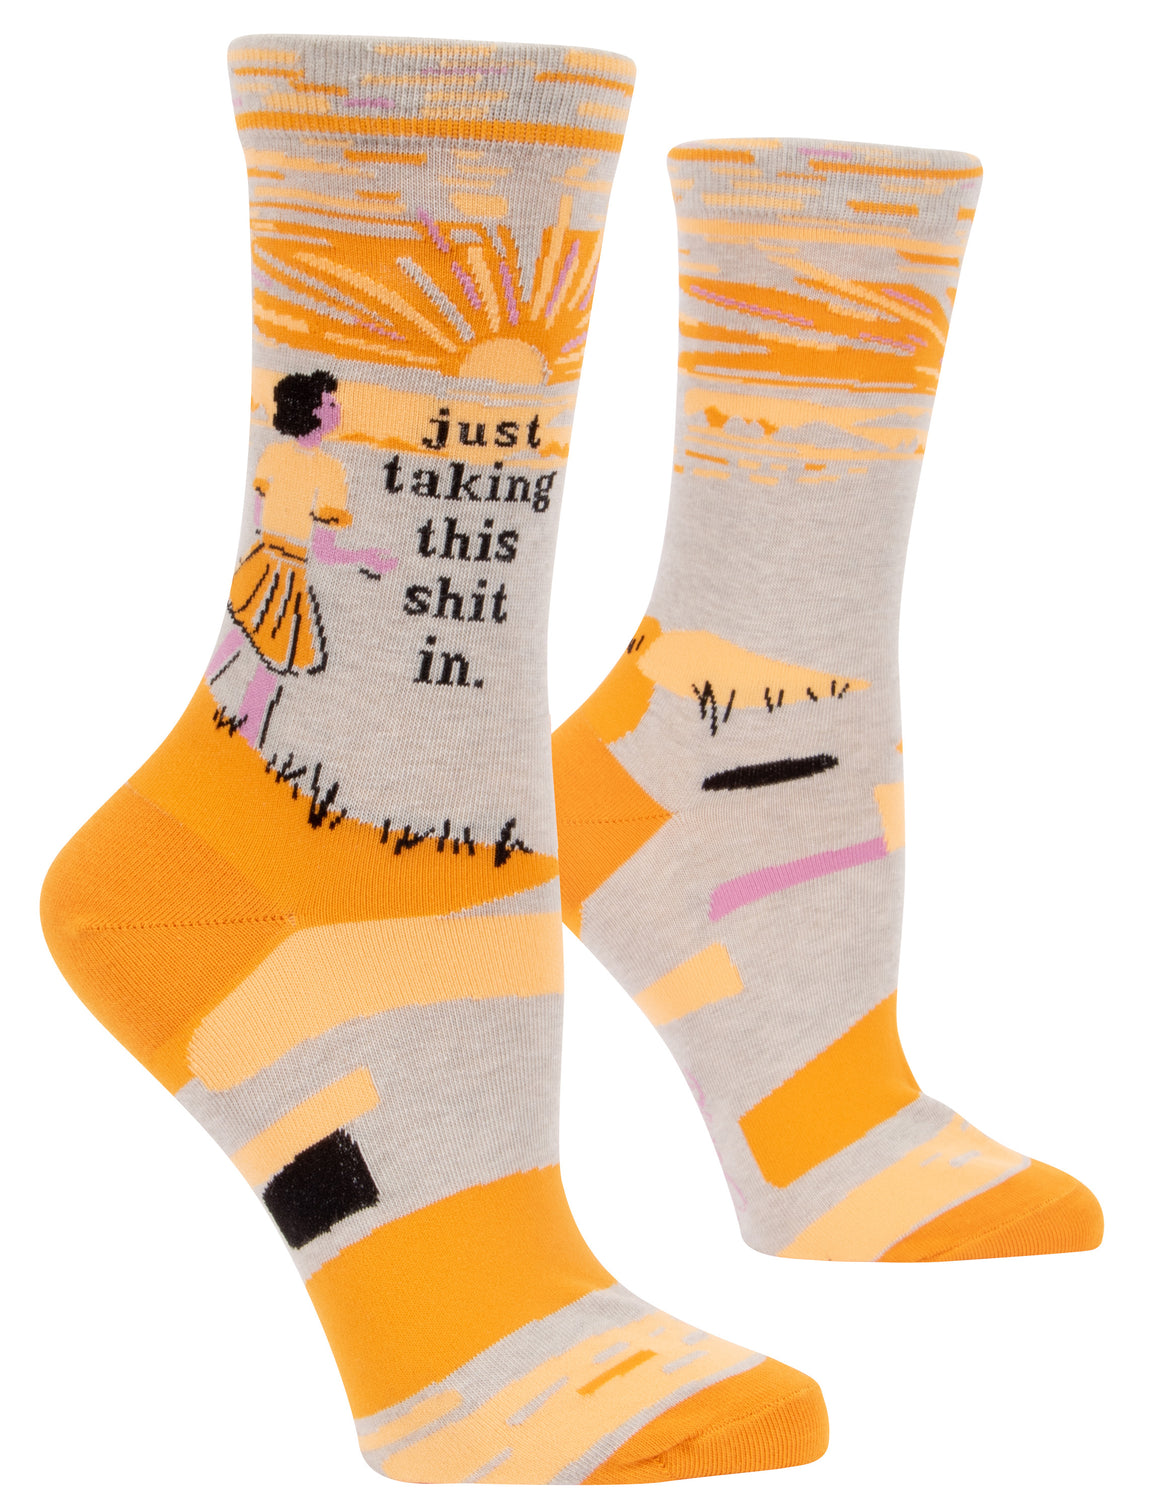 Crew Socks | Just Taking This Shit In